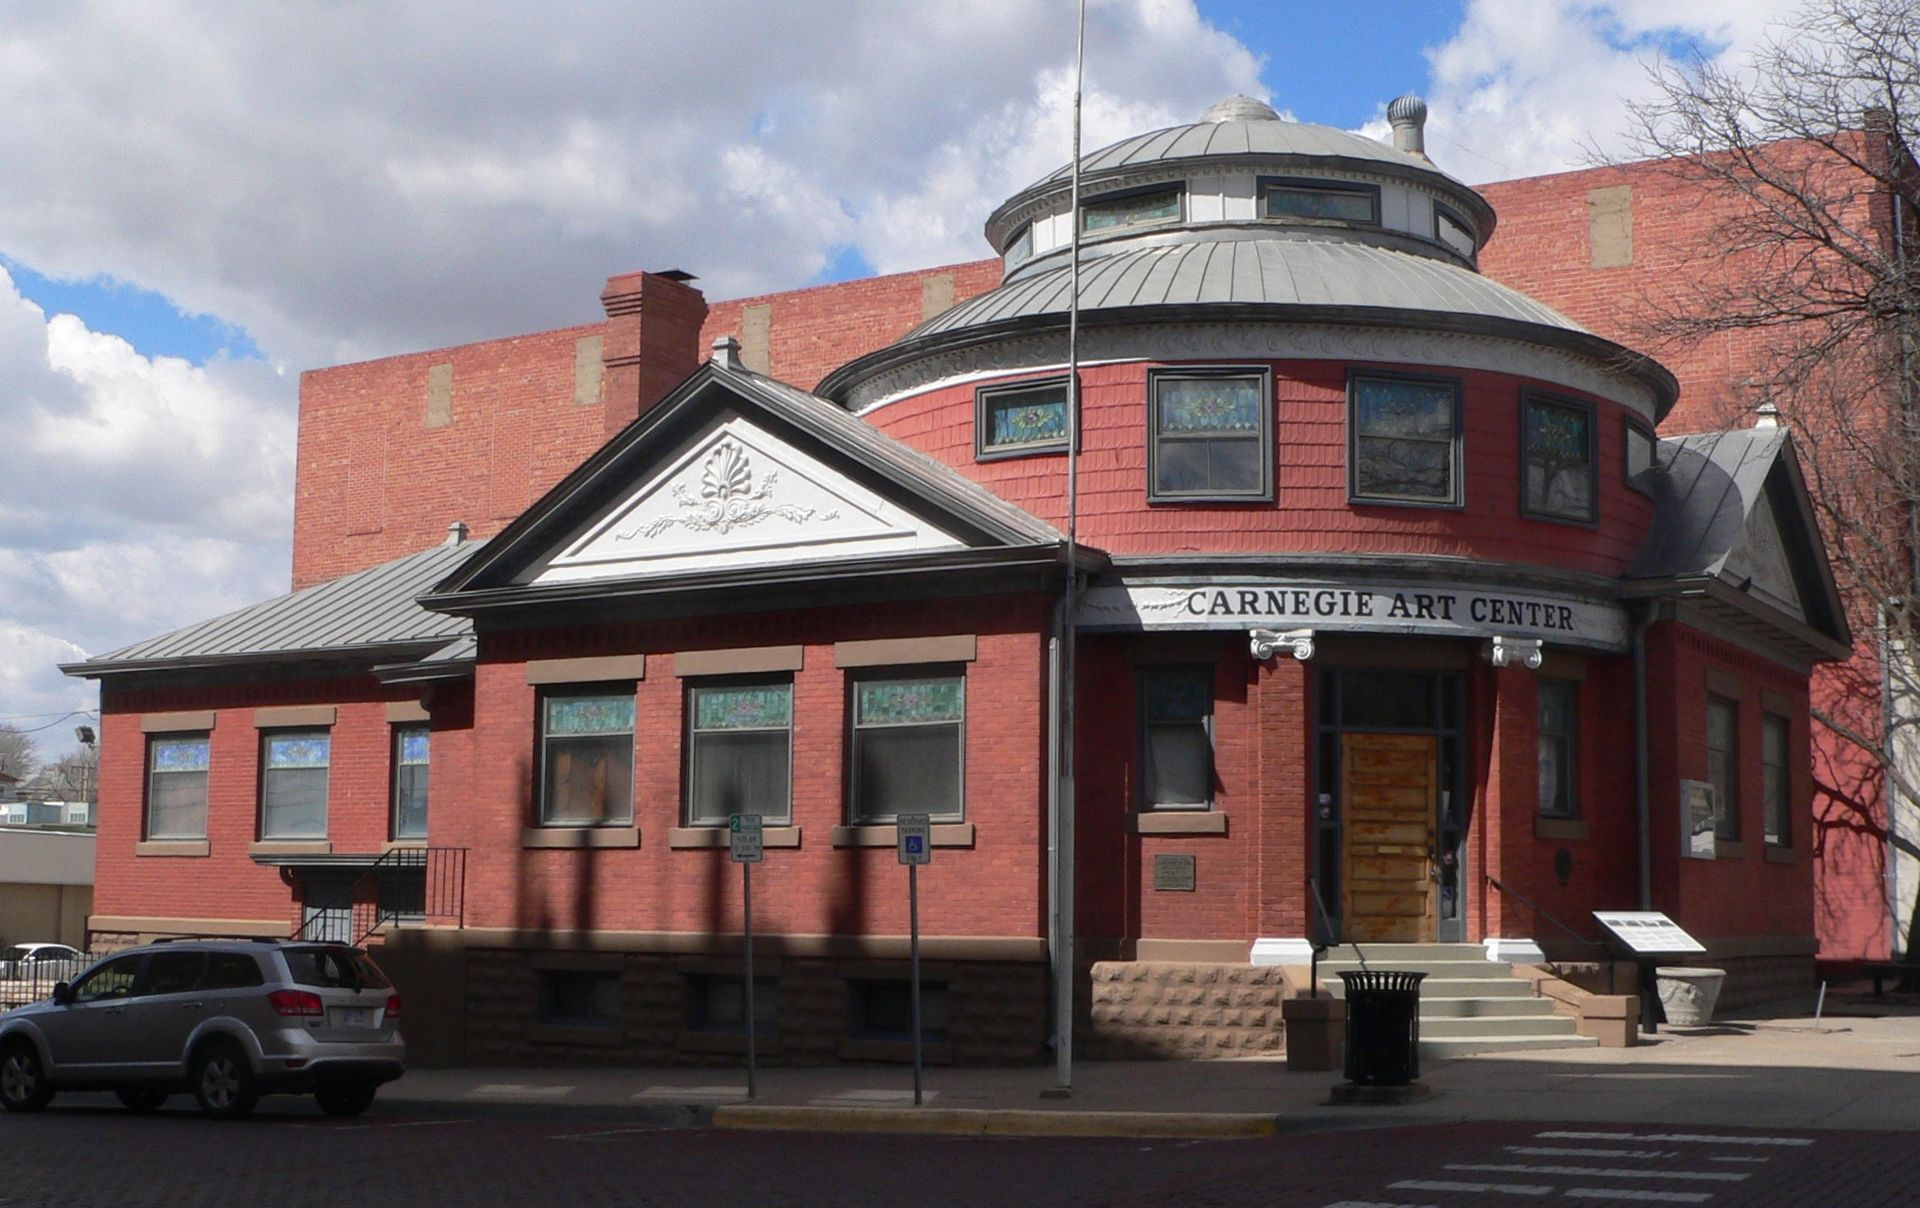 The Carnegie Library was built in 1907 and operated as such until 1970. It is now the Carnegie Art Center.